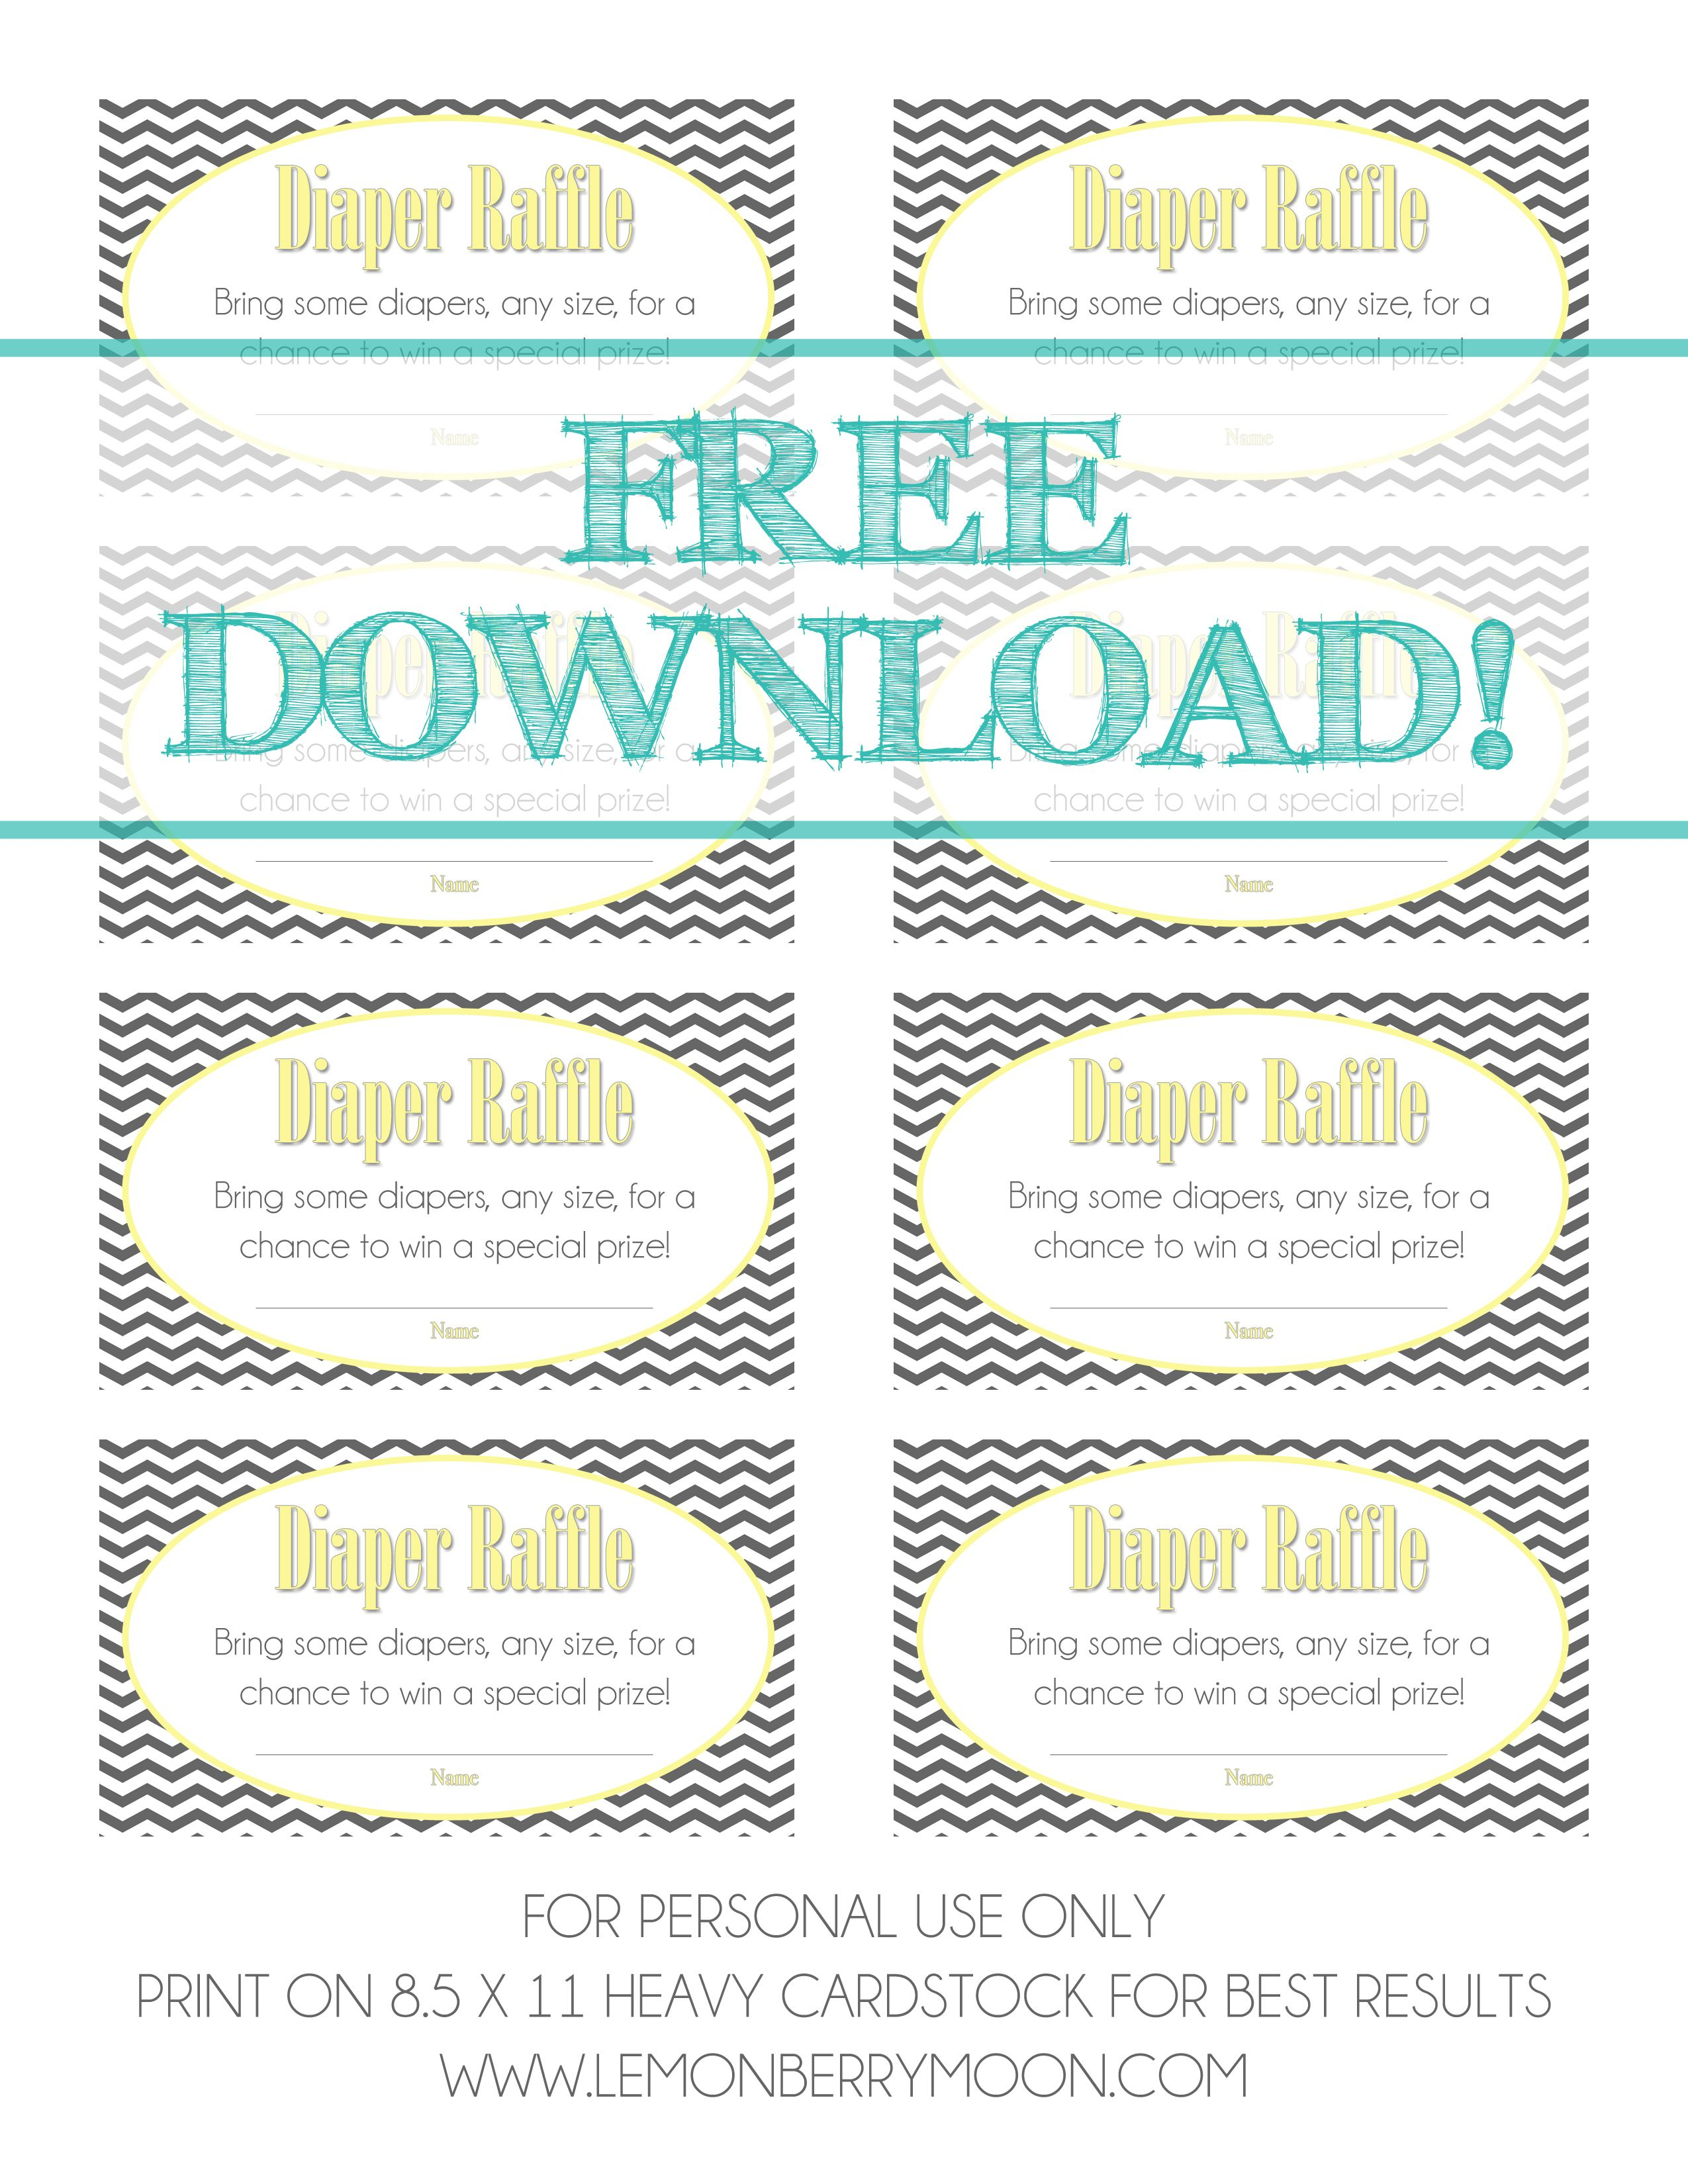 Free Download - Baby Diaper Raffle Template | Baaby Shower | Baby - Free Printable Diaper Raffle Tickets For Boy Baby Shower